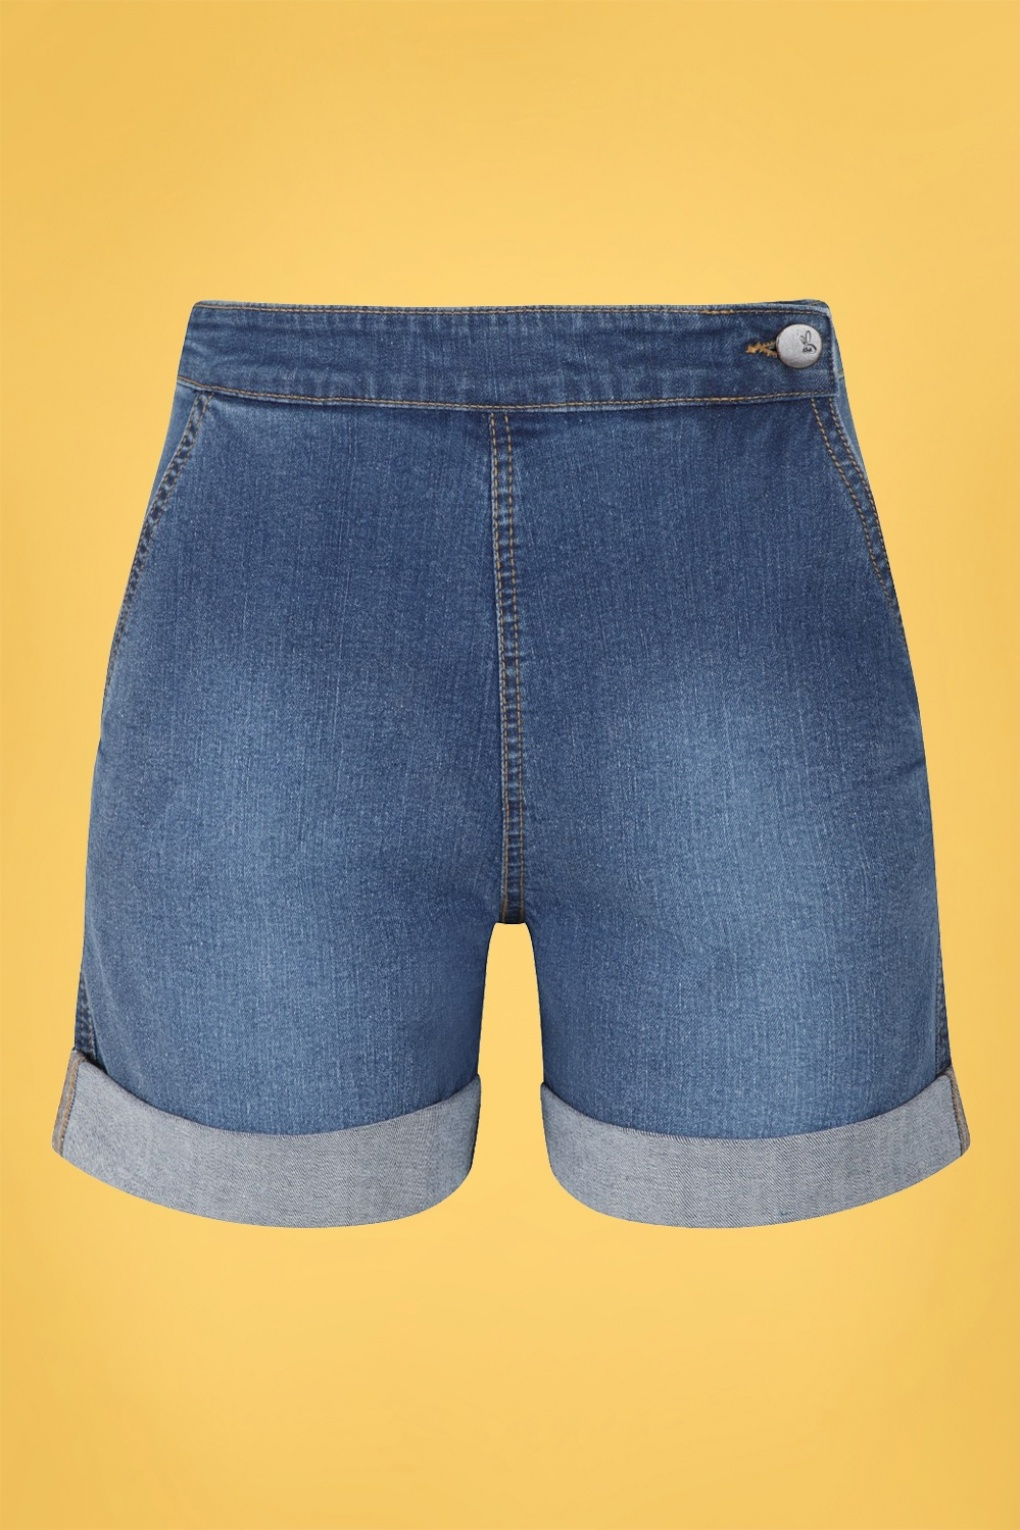 Vintage Shorts, Culottes,  Capris History 50s Nash Denim Shorts in Blue £34.32 AT vintagedancer.com